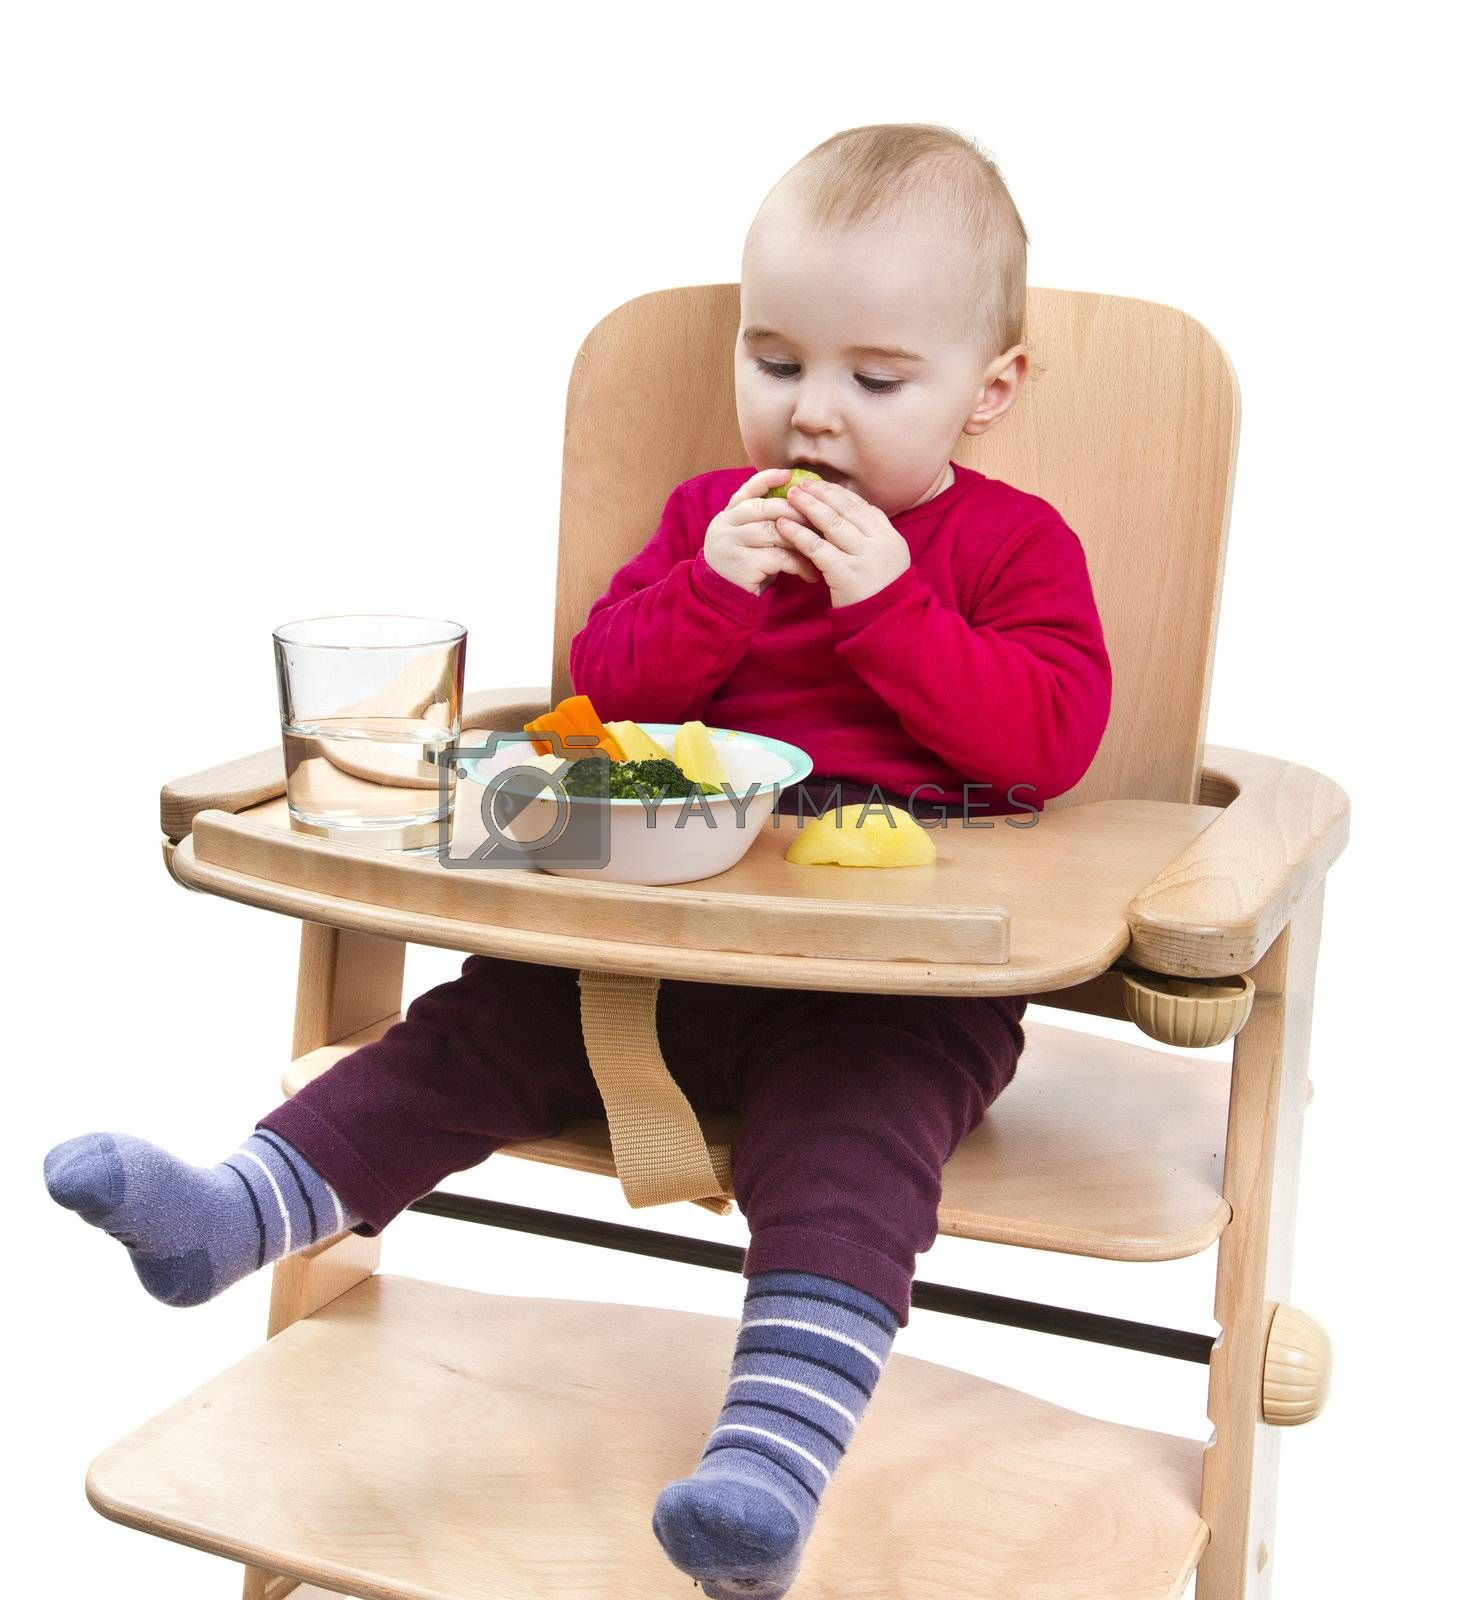 young child in red shirt eating vegetables in wooden chair. Isolated on white background